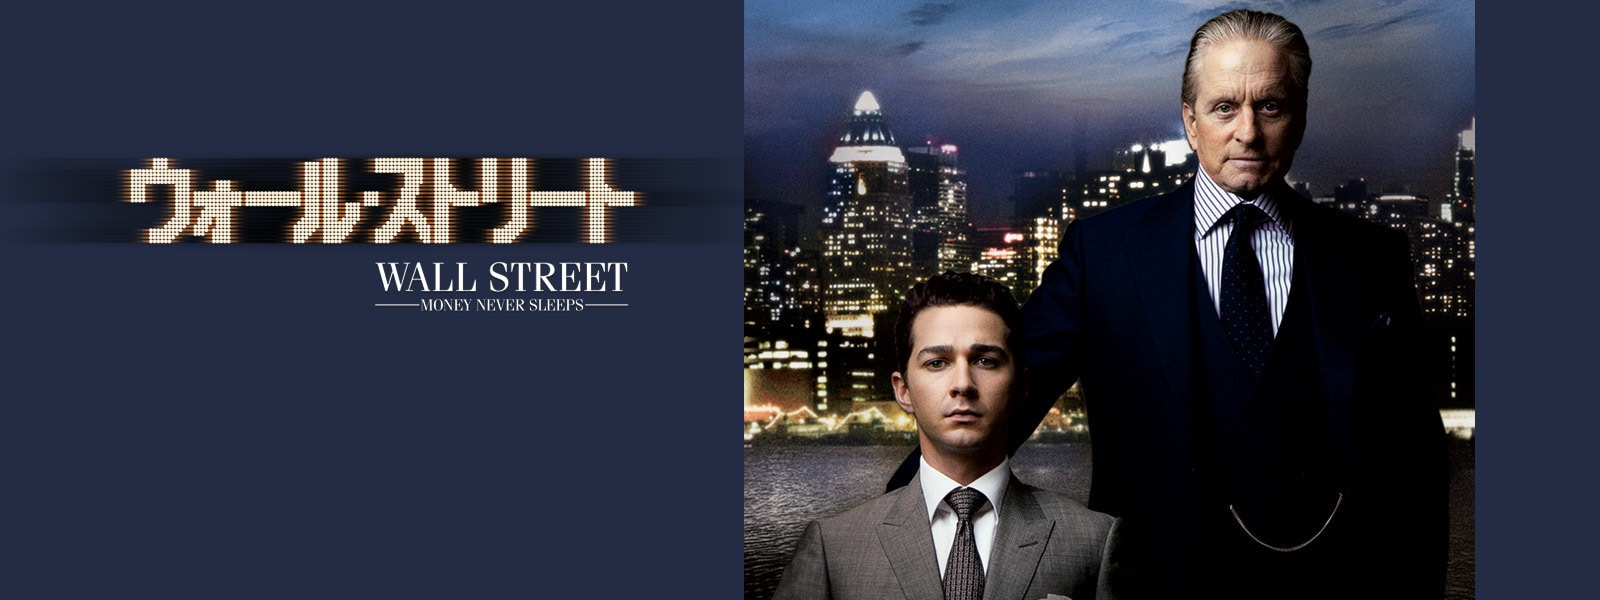 ウォール・ストリート Wall Street: Money Never Sleeps Hero